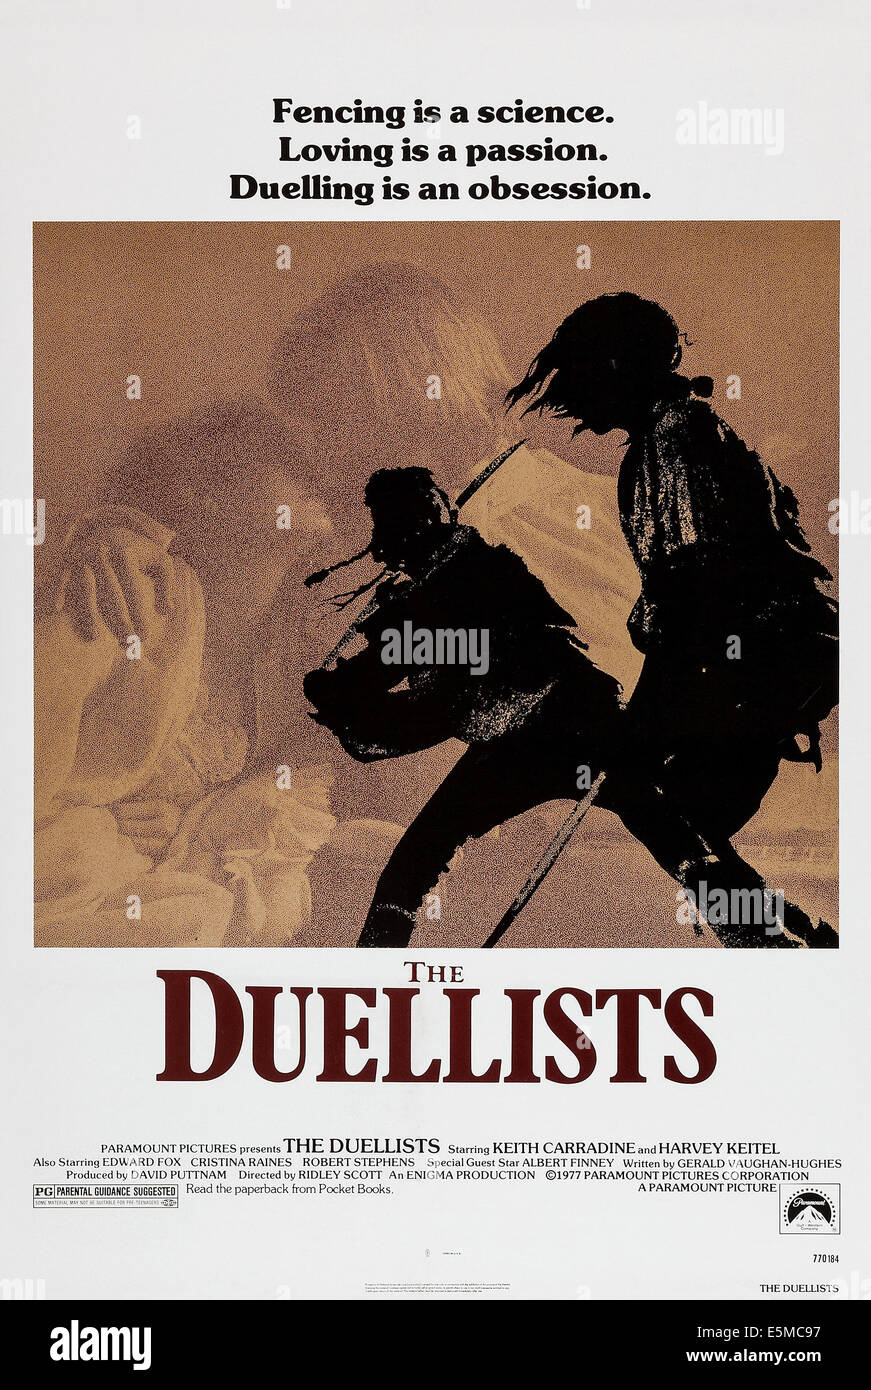 THE DUELLISTS, poster art, 1977. - Stock Image